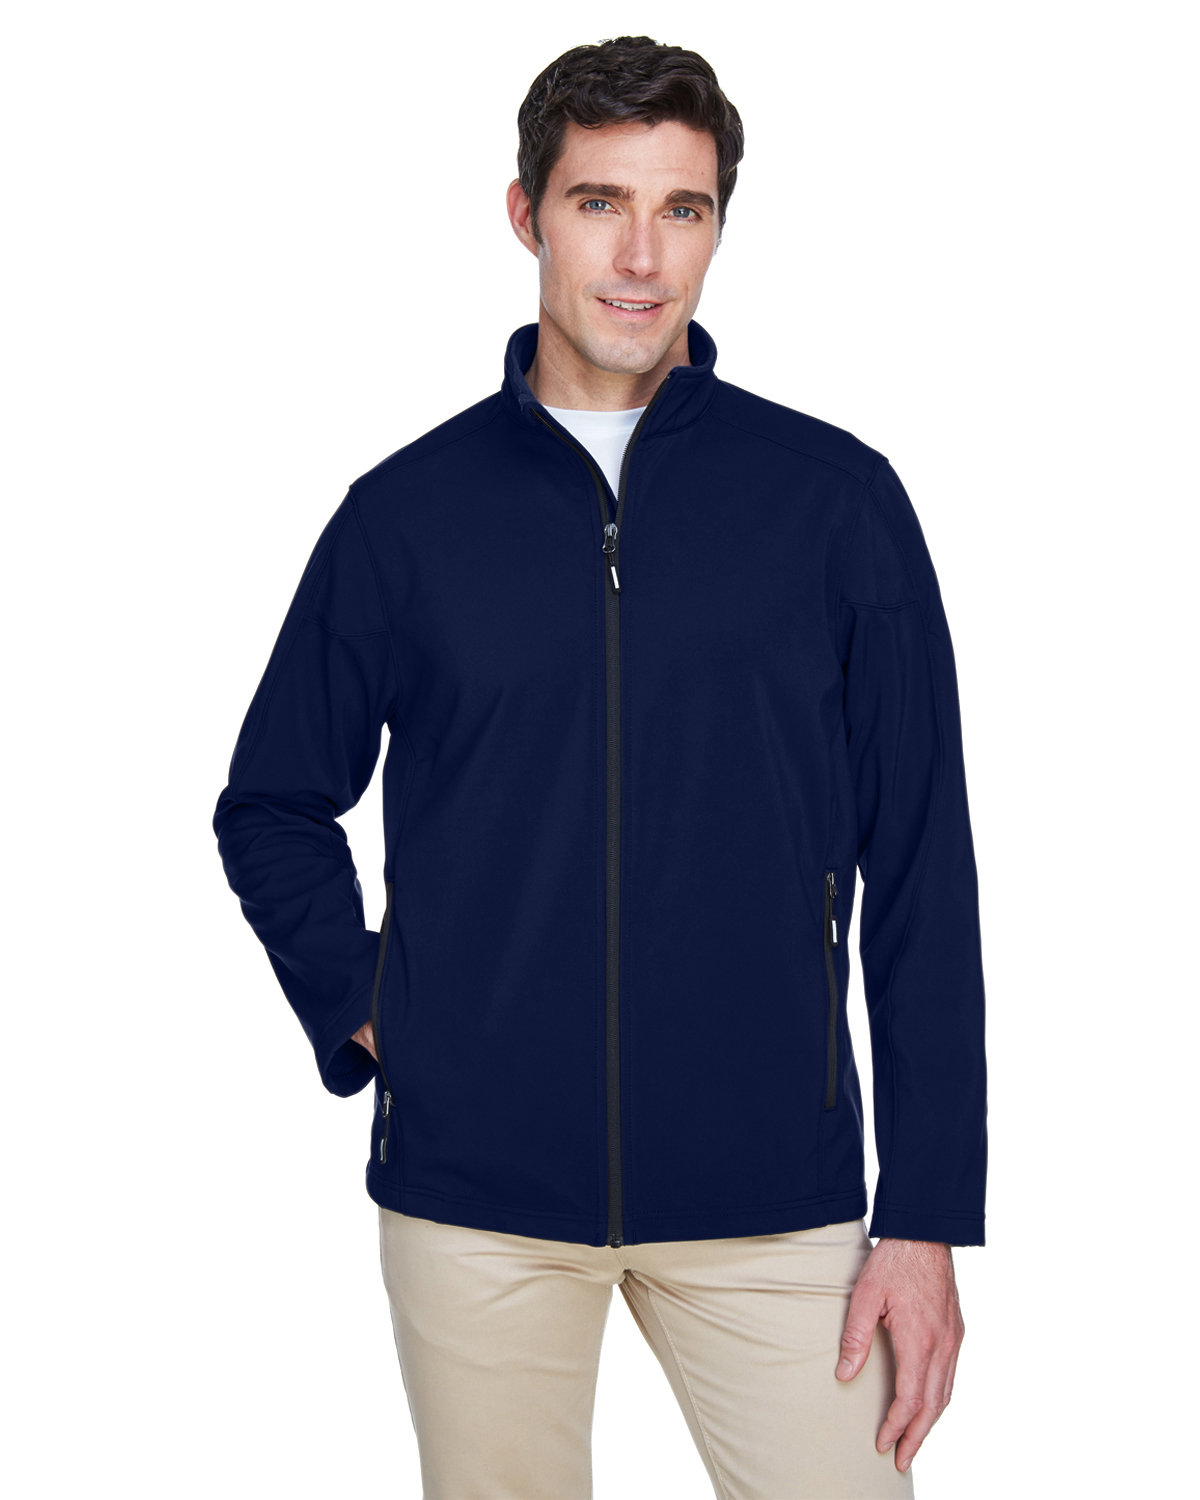 Core 365 Men's Tall Cruise Two-Layer Fleece Bonded SoftShell Jacket CLASSIC NAVY